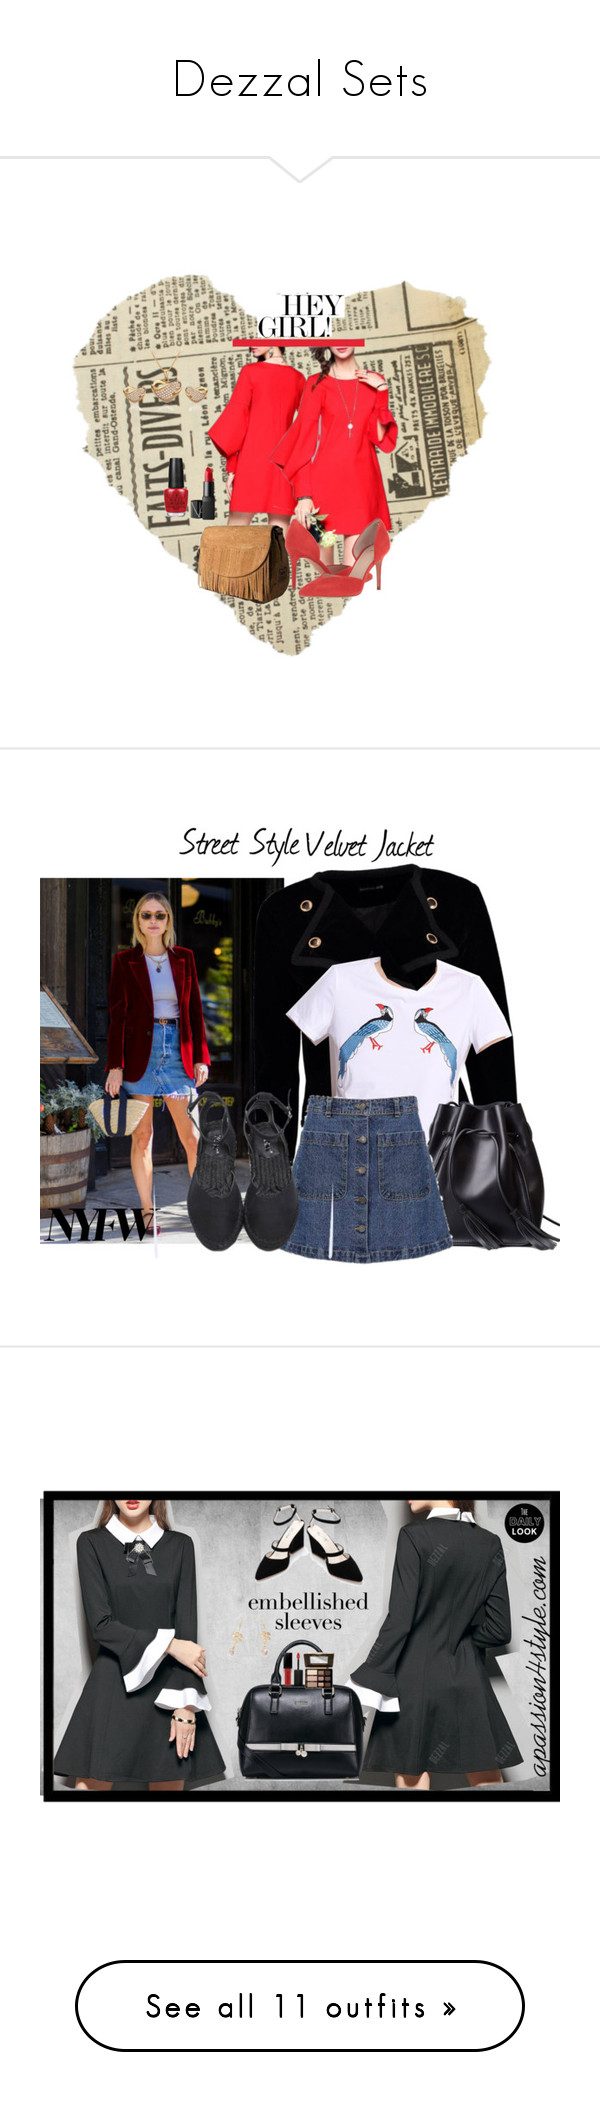 """""""Dezzal Sets"""" by namaste203 ❤ liked on Polyvore featuring Marc Fisher LTD, OPI, NARS Cosmetics, Boohoo, StreetStyle, NYFW, velvetjacket, Smashbox, Too Faced Cosmetics and flares"""